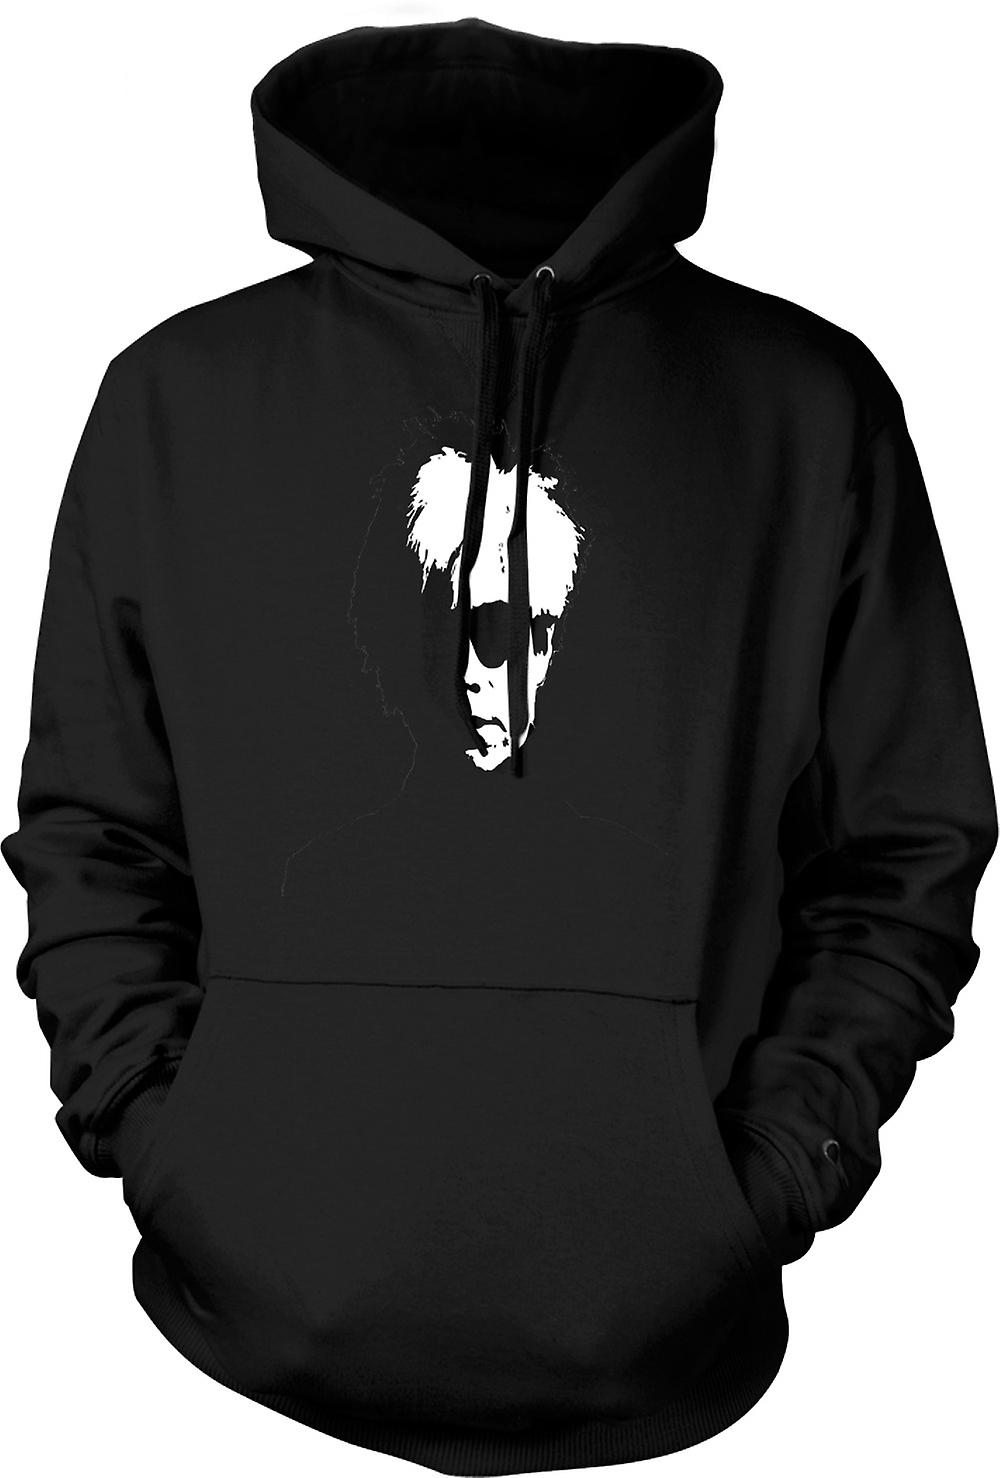 Mens Hoodie - Andy Warhol - BW - Pop Art